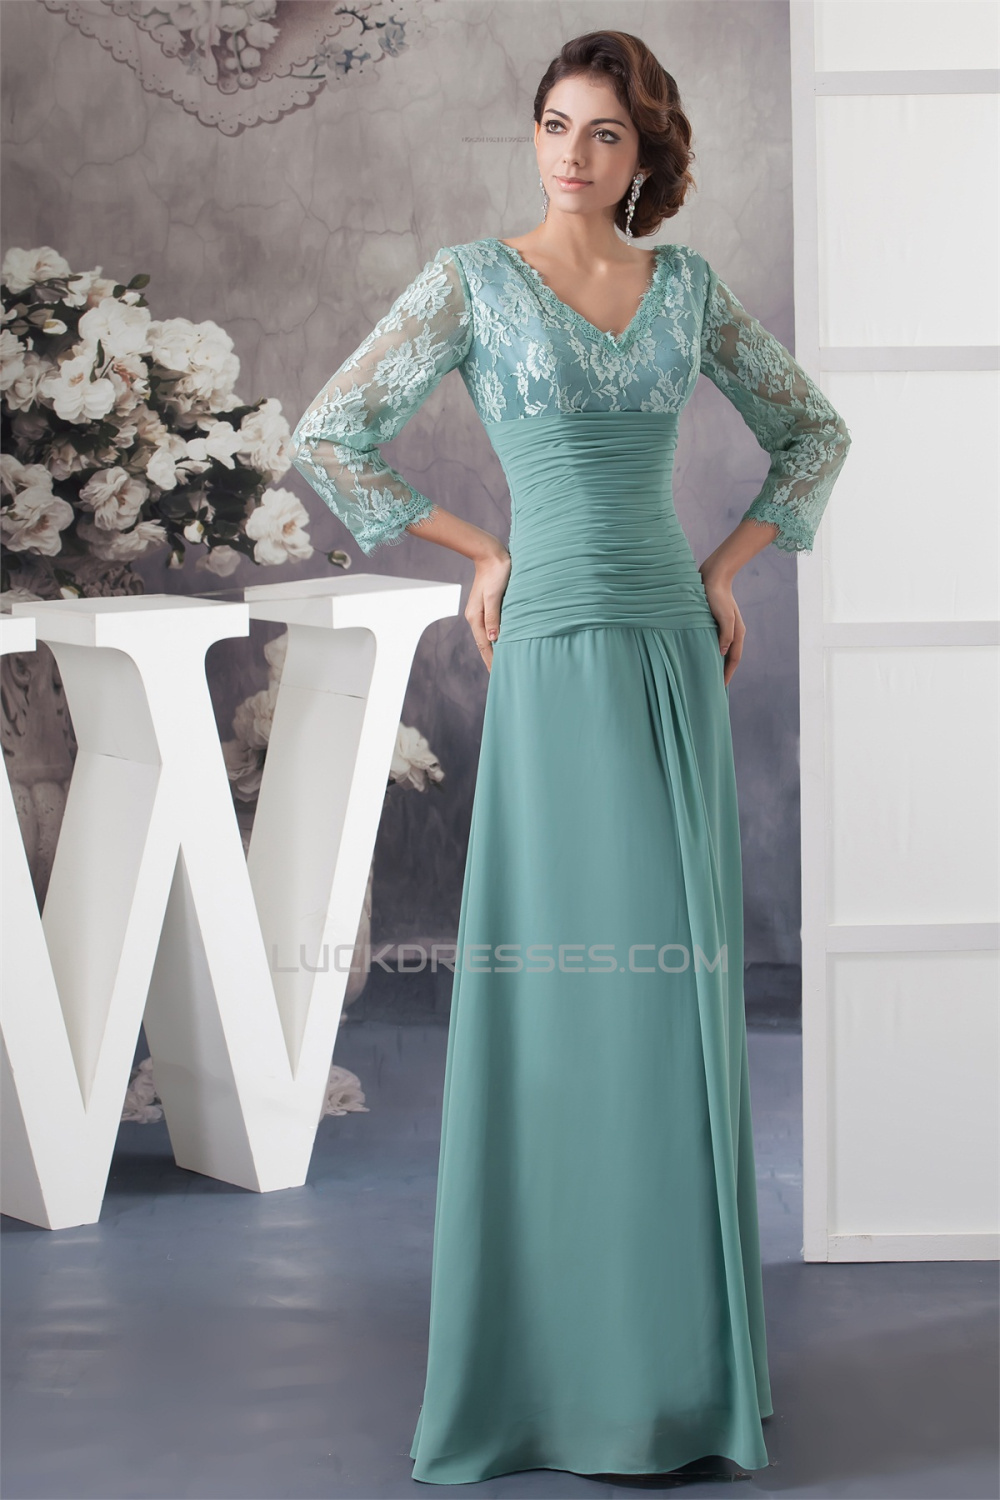 Sheath Column 3 4 Sleeve Floor Length Chiffon Lace Mother